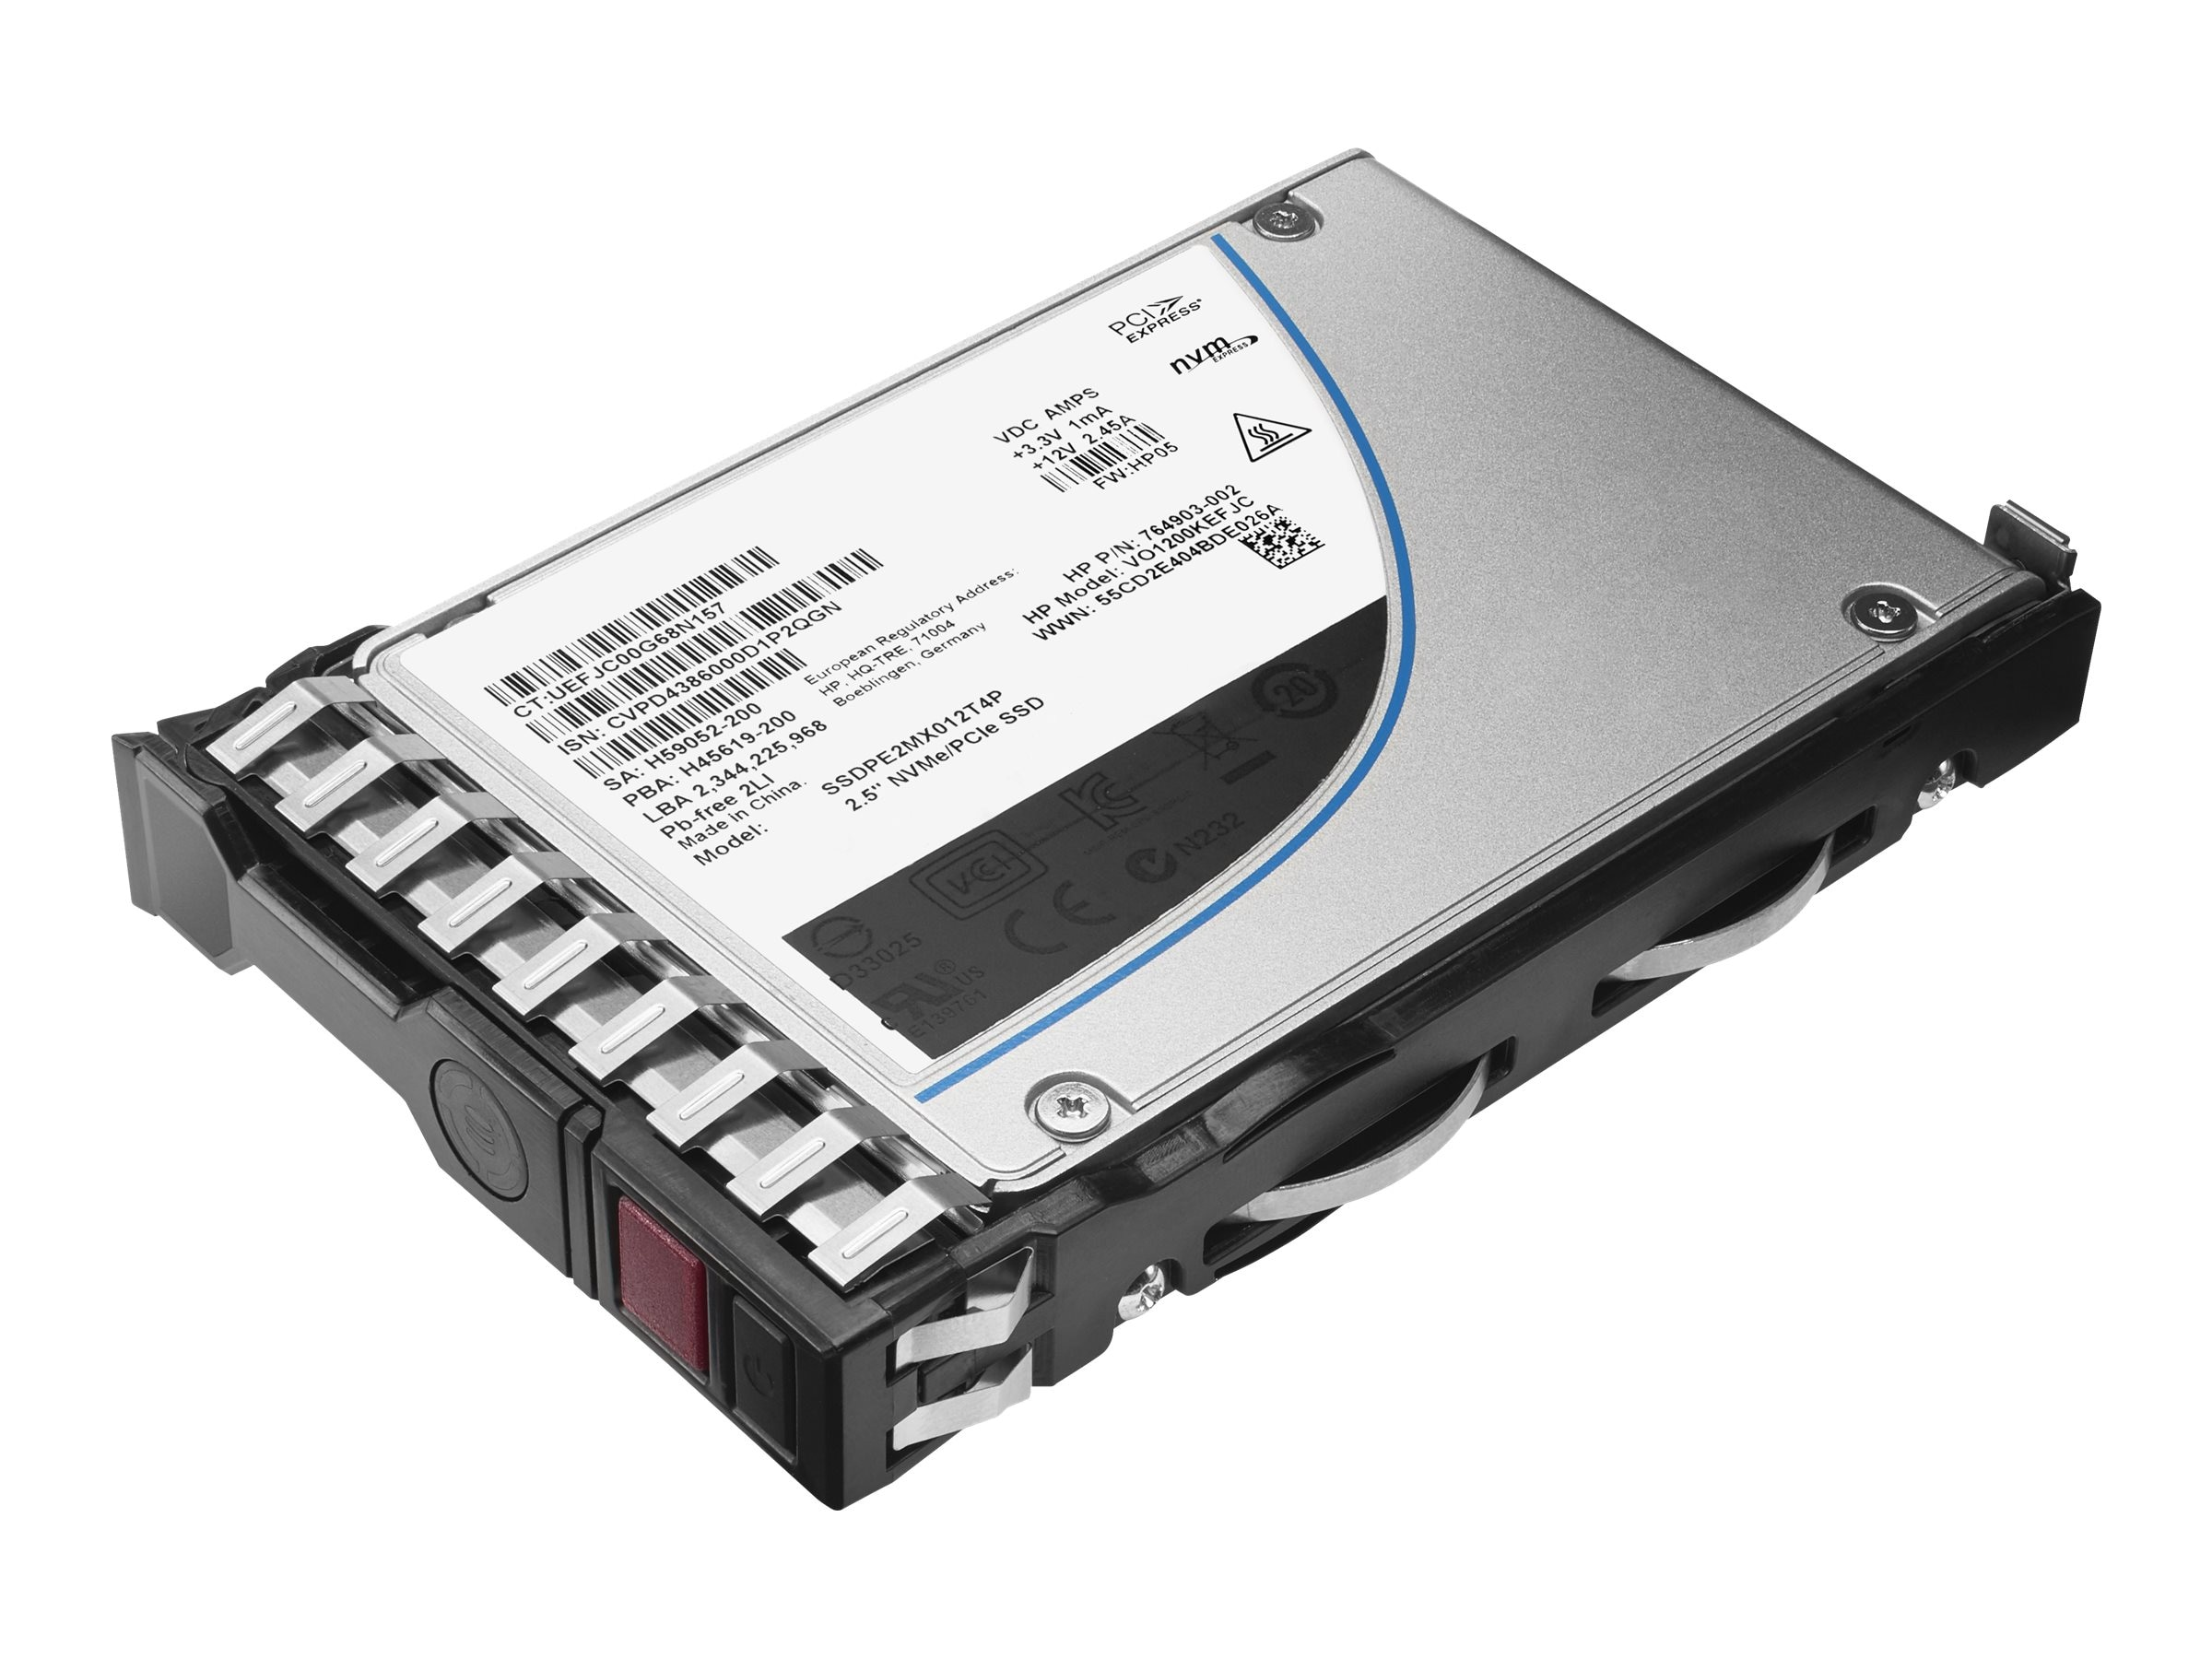 HPE 120GB SATA 6Gb s Value Endurance LFF 3.5 SC Converter Enterprise Value G1 Solid State Drive, 756624-B21, 18402972, Solid State Drives - Internal